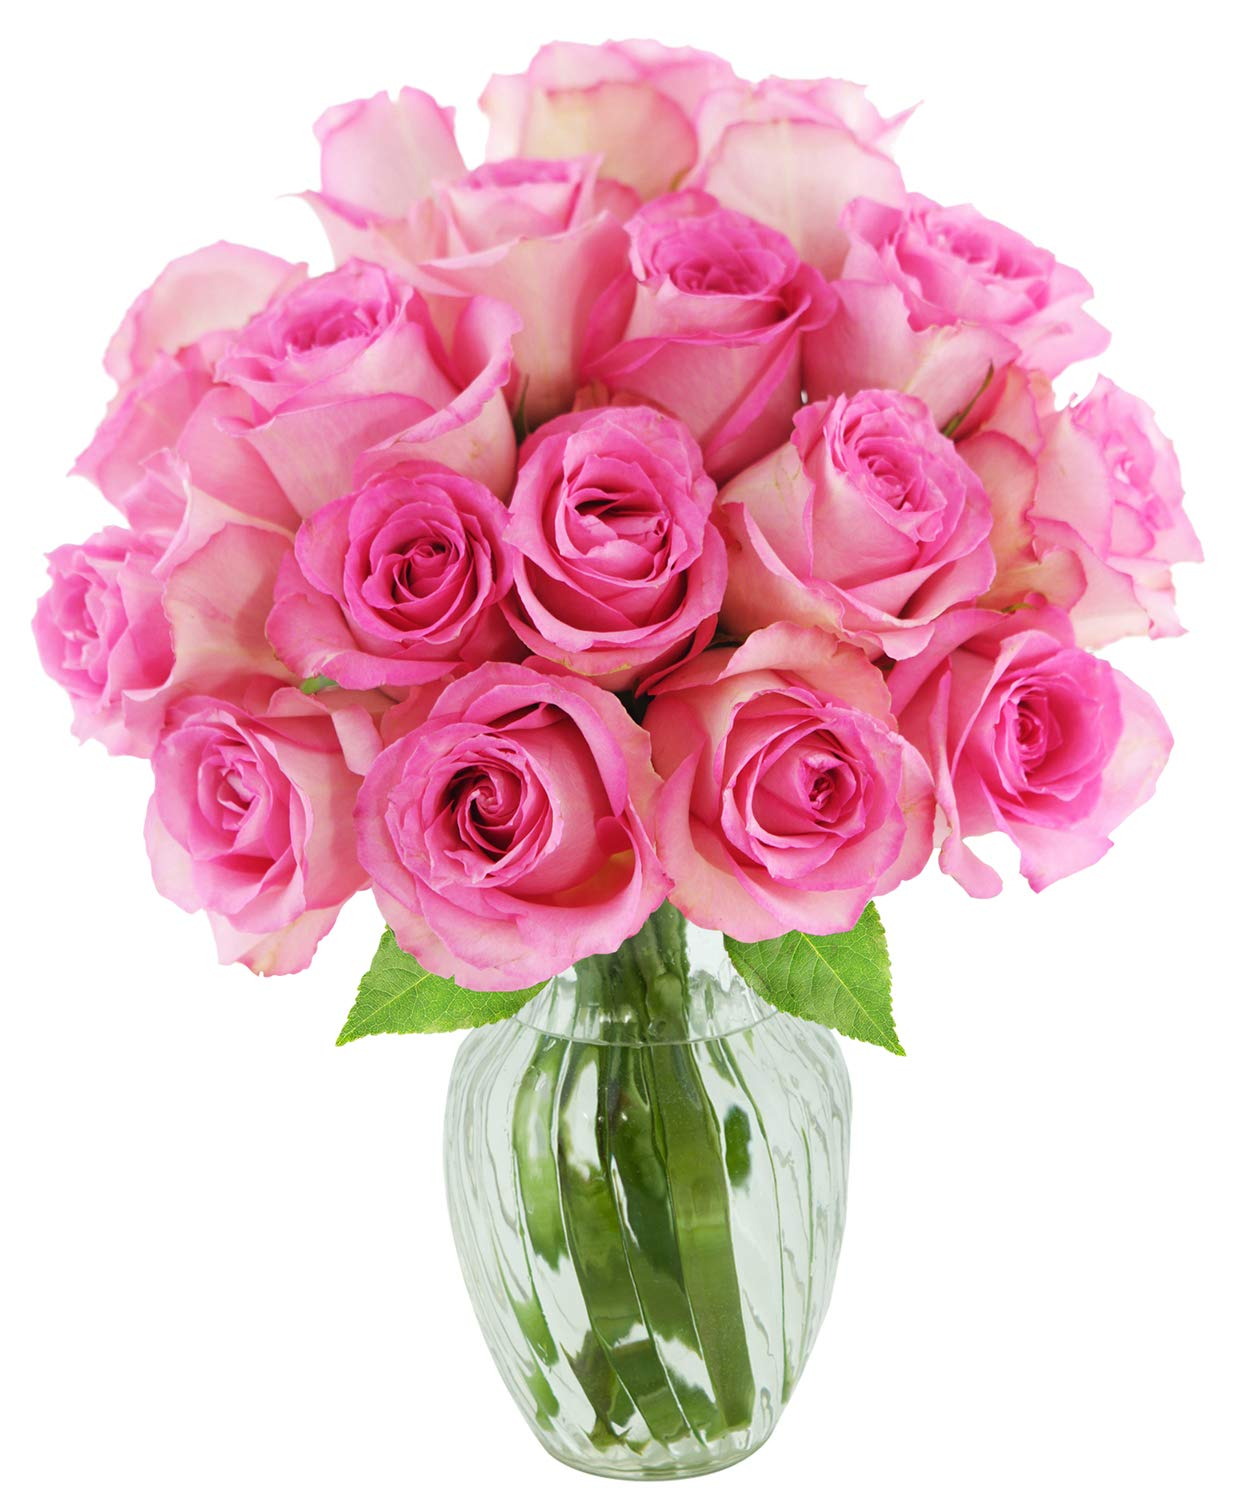 KaBloom Bouquet of 18 Fresh Pink Roses (Farm-Fresh, Long-Stem) with Vase by KaBloom